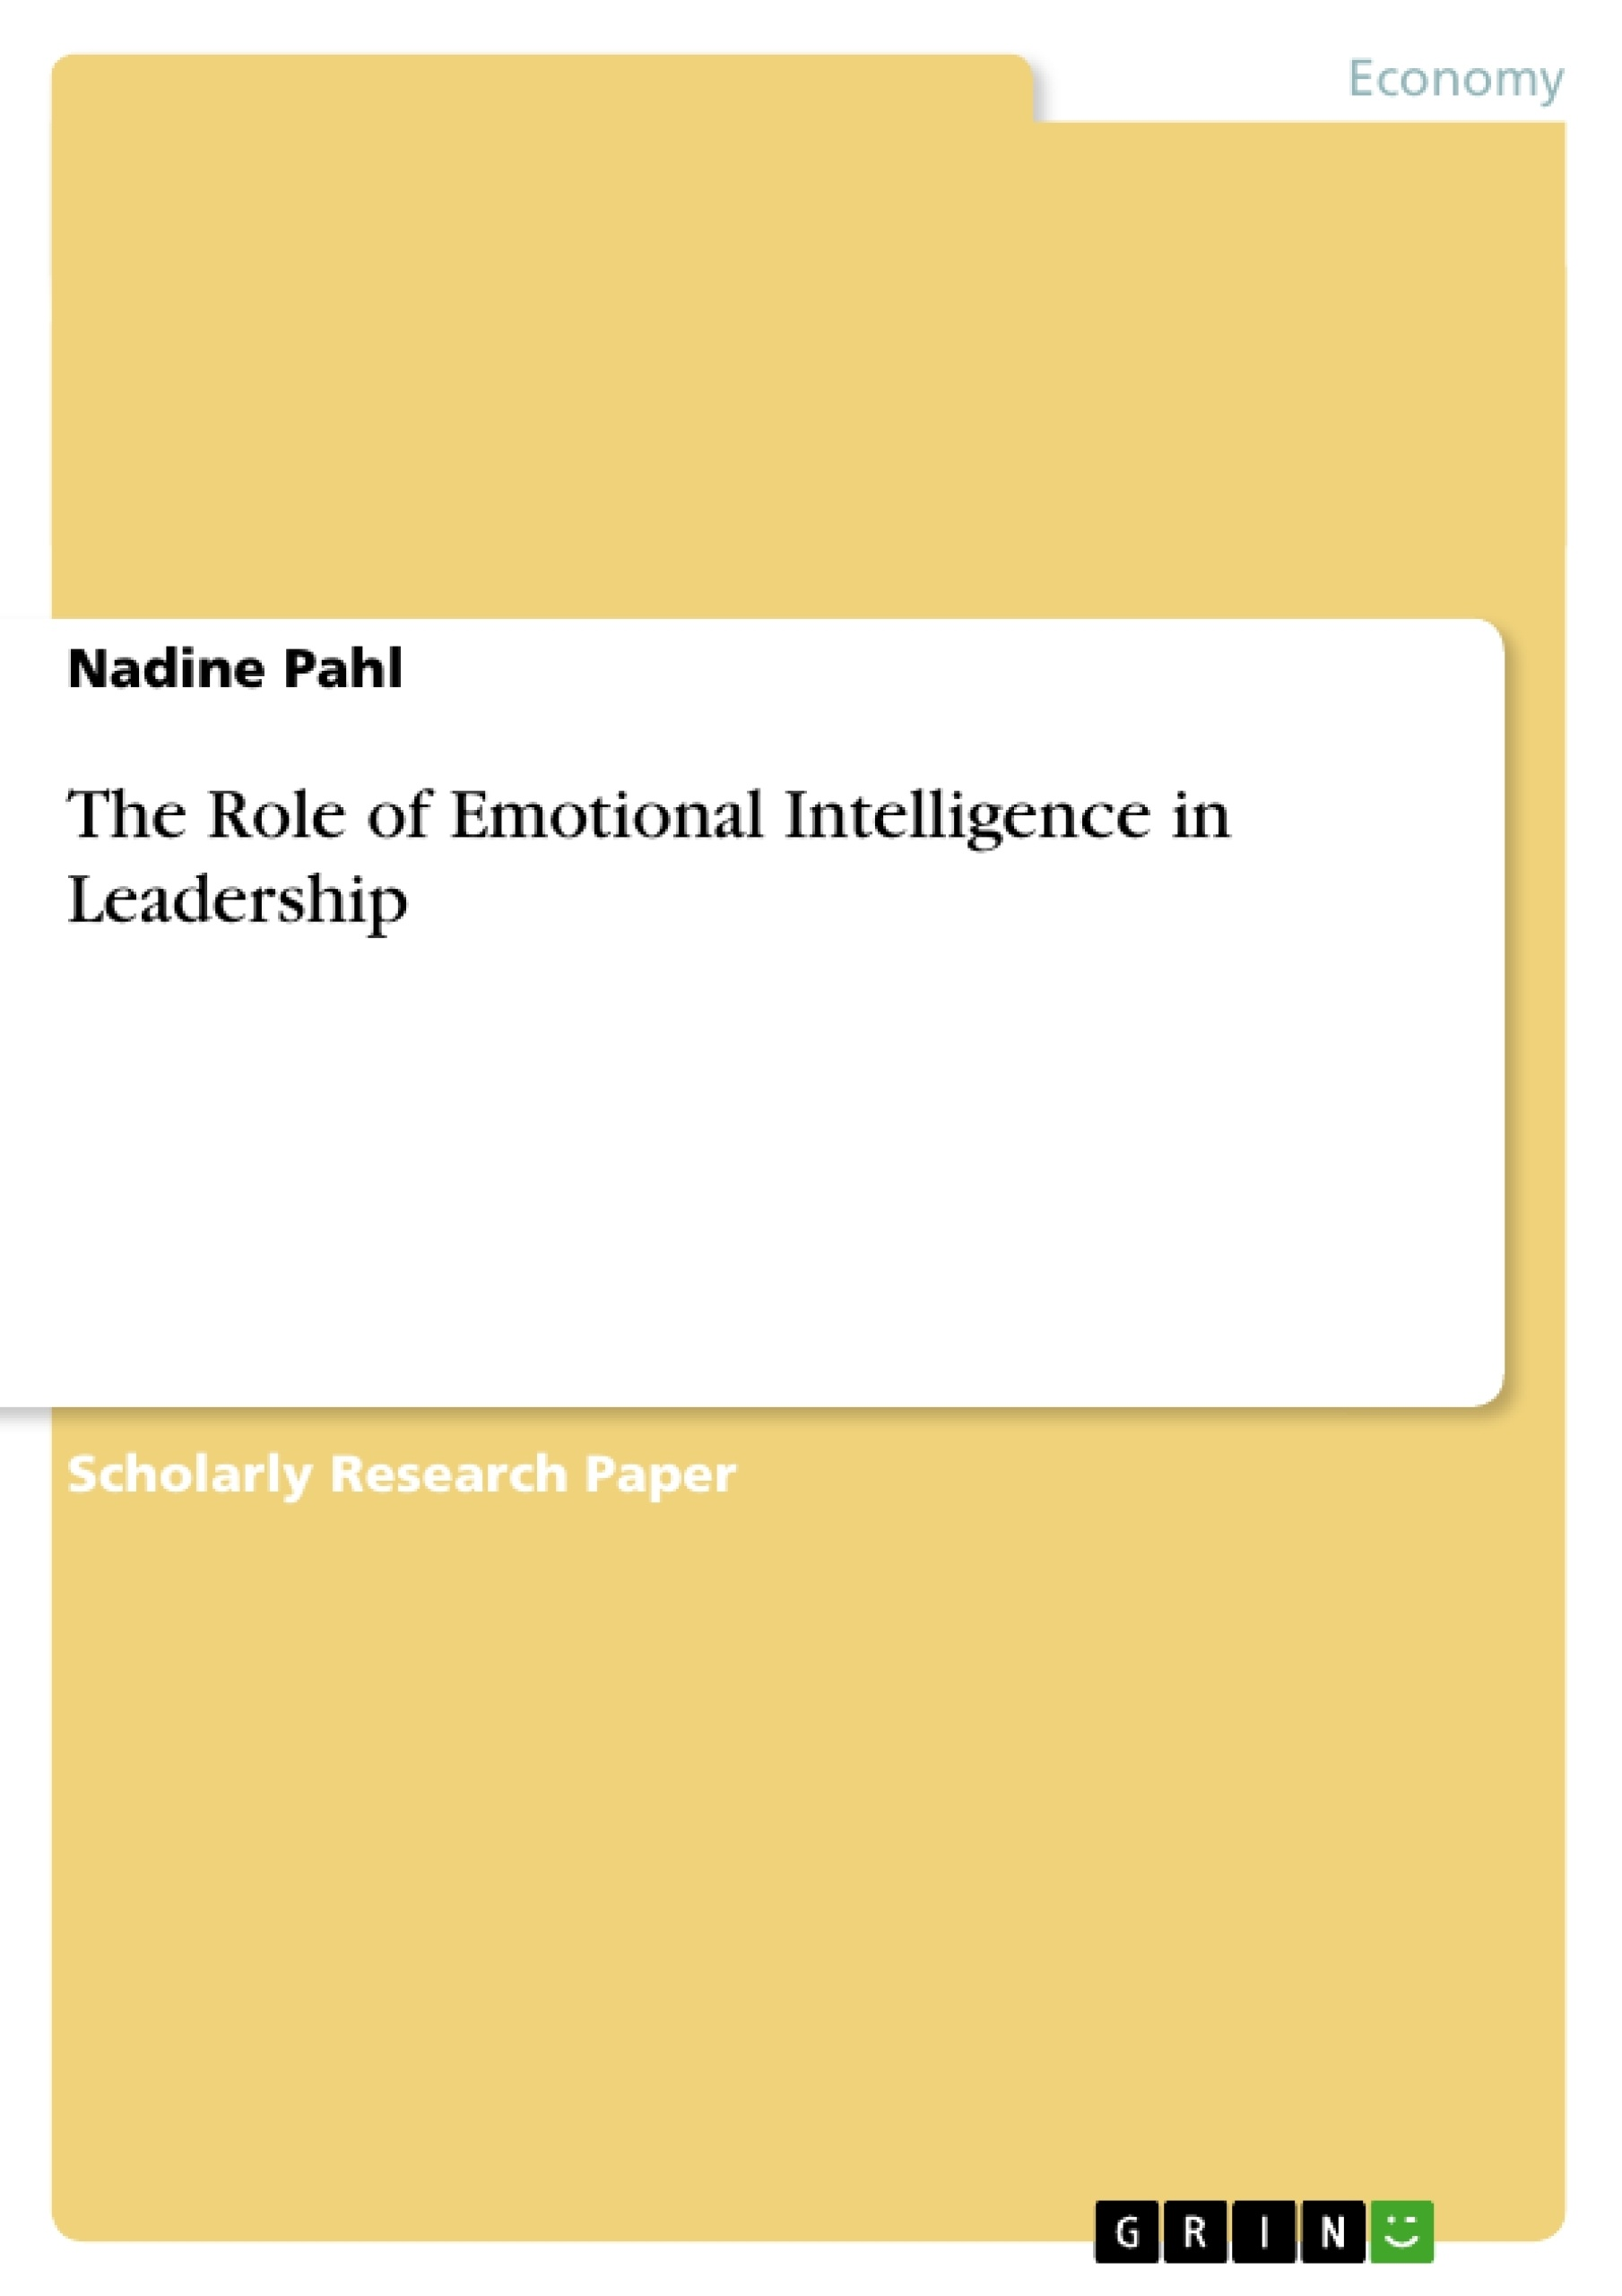 emotional intelligence essay emotional intelligence emotional  the role of emotional intelligence in leadership publish your the role of emotional intelligence in leadership success definition essay